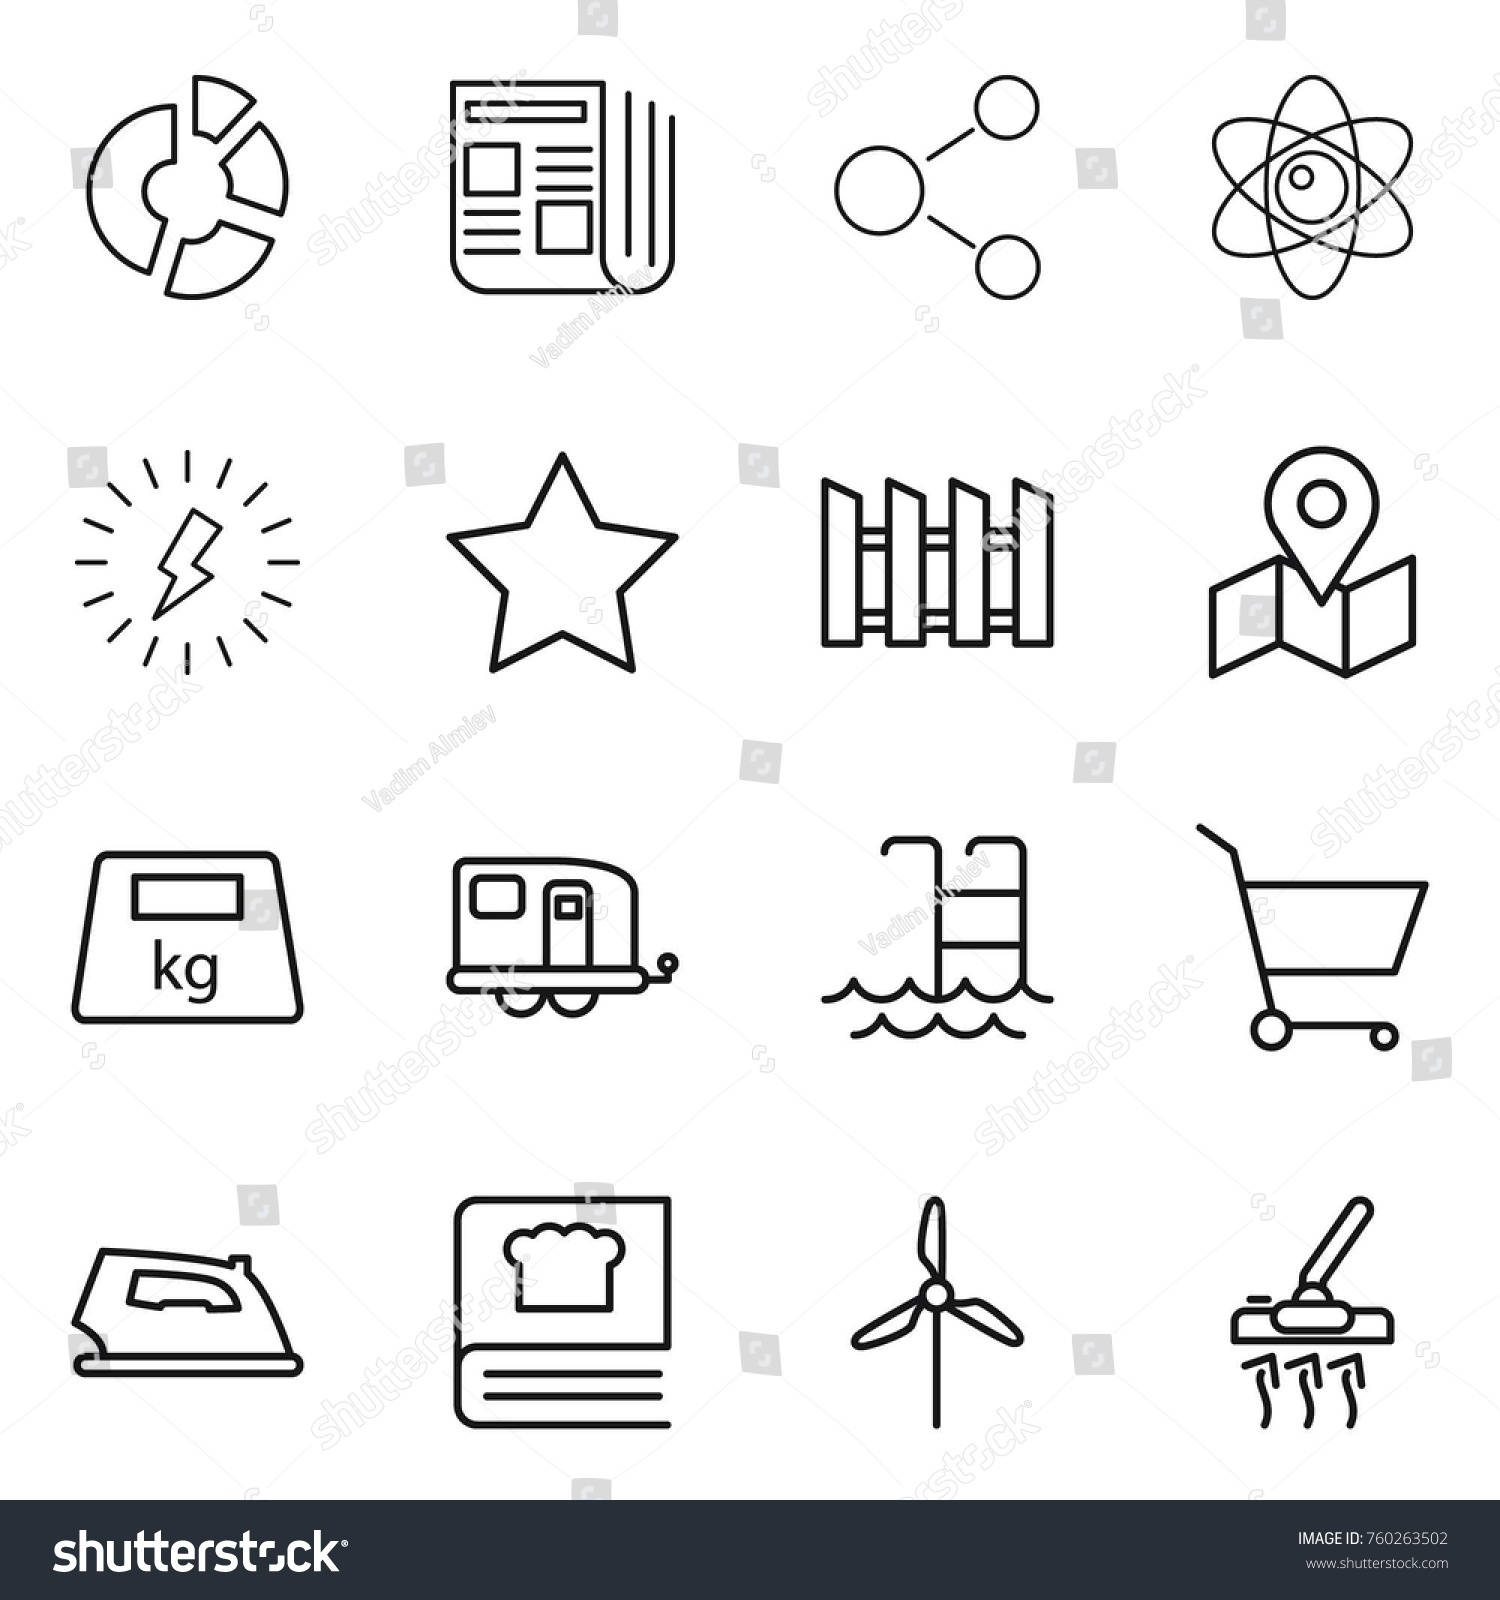 Thin Line Icon Set Circle Diagram Stock Vector Royalty Free Vacuum Cleaner Newspaper Molecule Atom Lightning